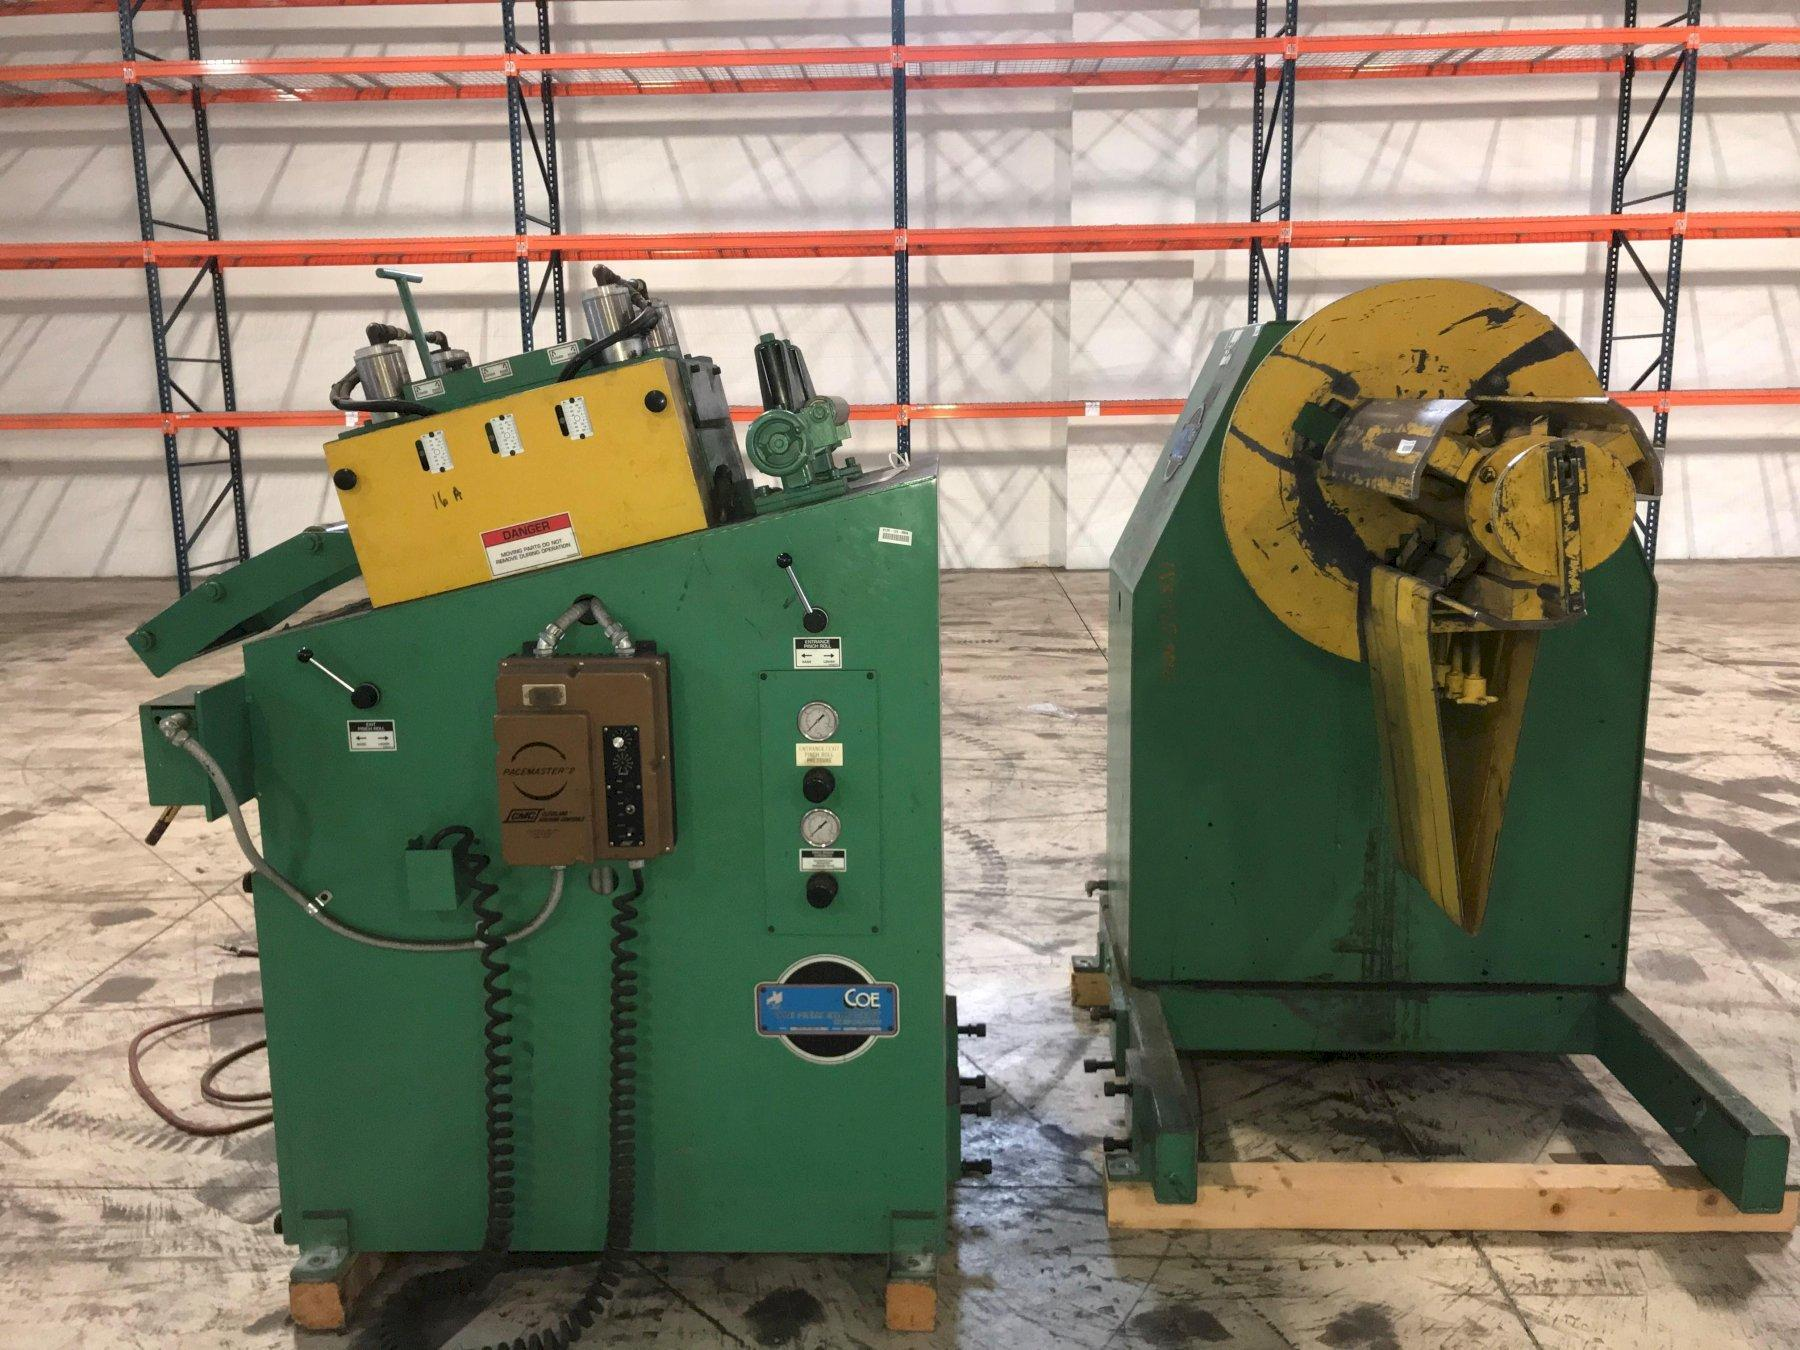 Coe Press Conventional Coil Feed Line 8,000 Lb x 12